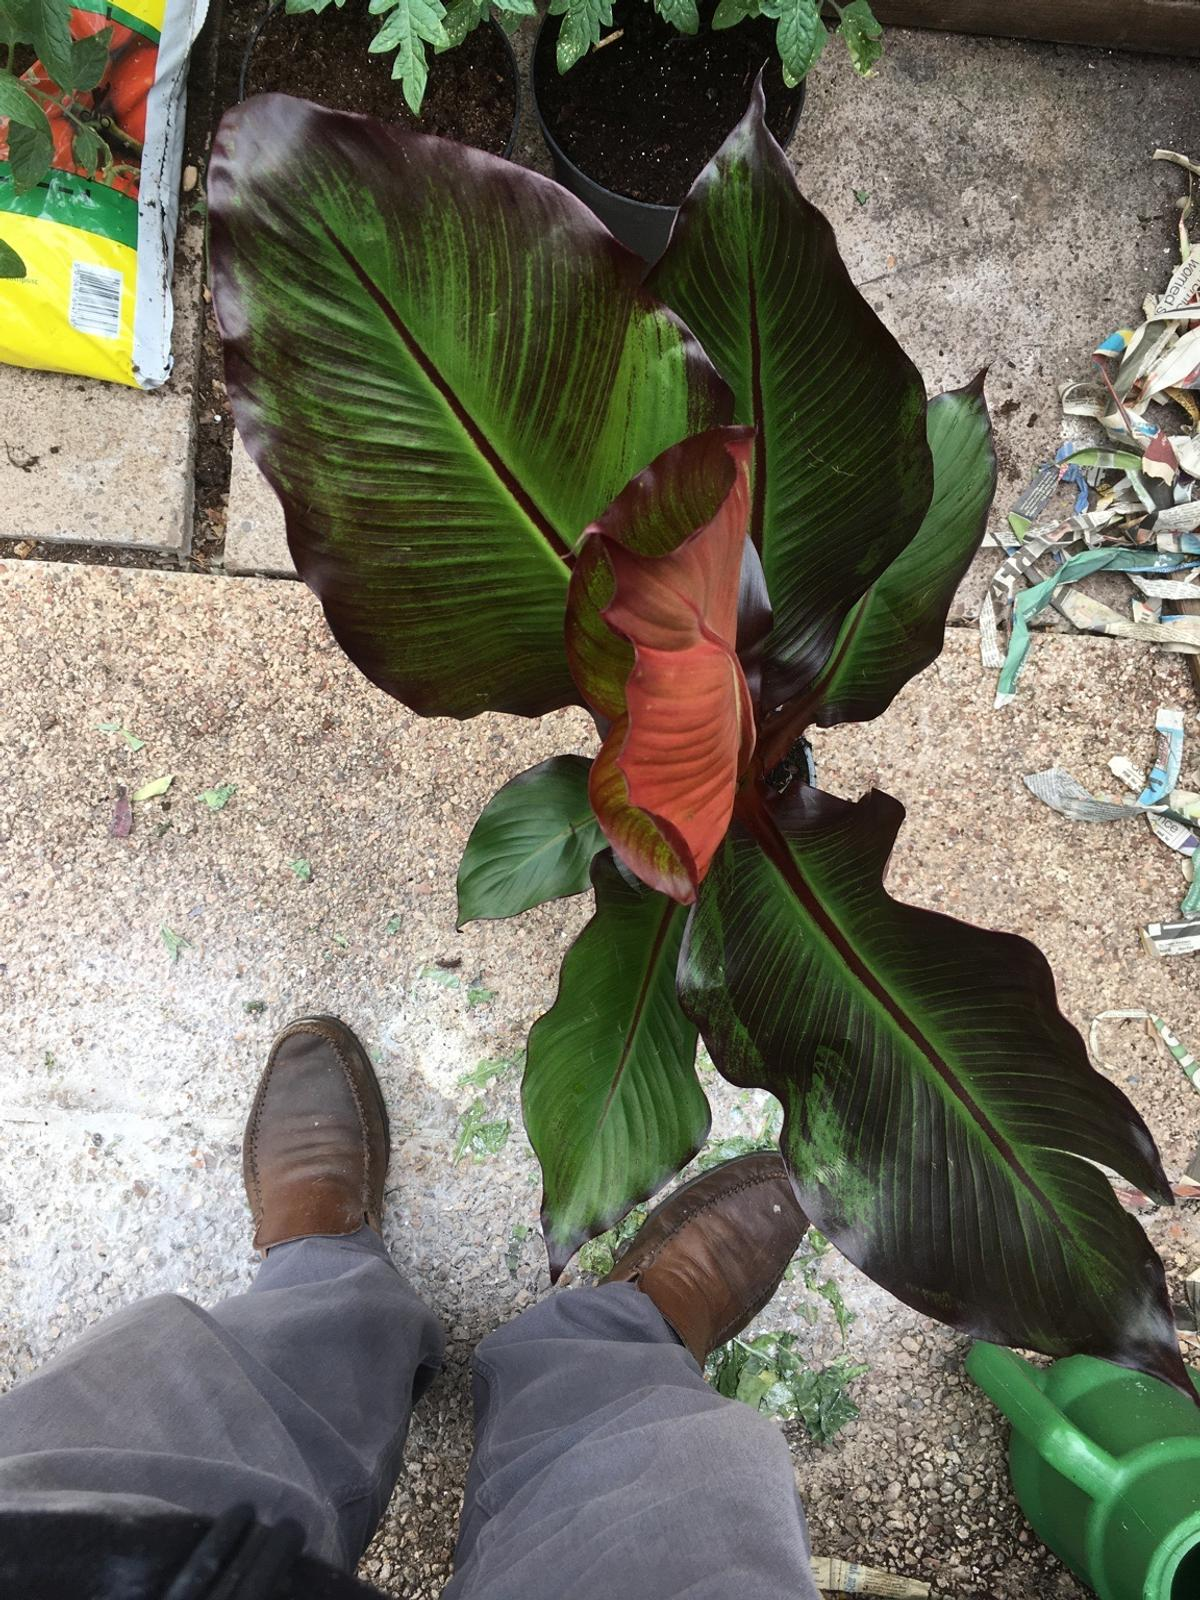 Fantastic looking banan palm super coloured foliage deep red to mauve also known as red banana, Ideal for growing in a pot or planted in garden